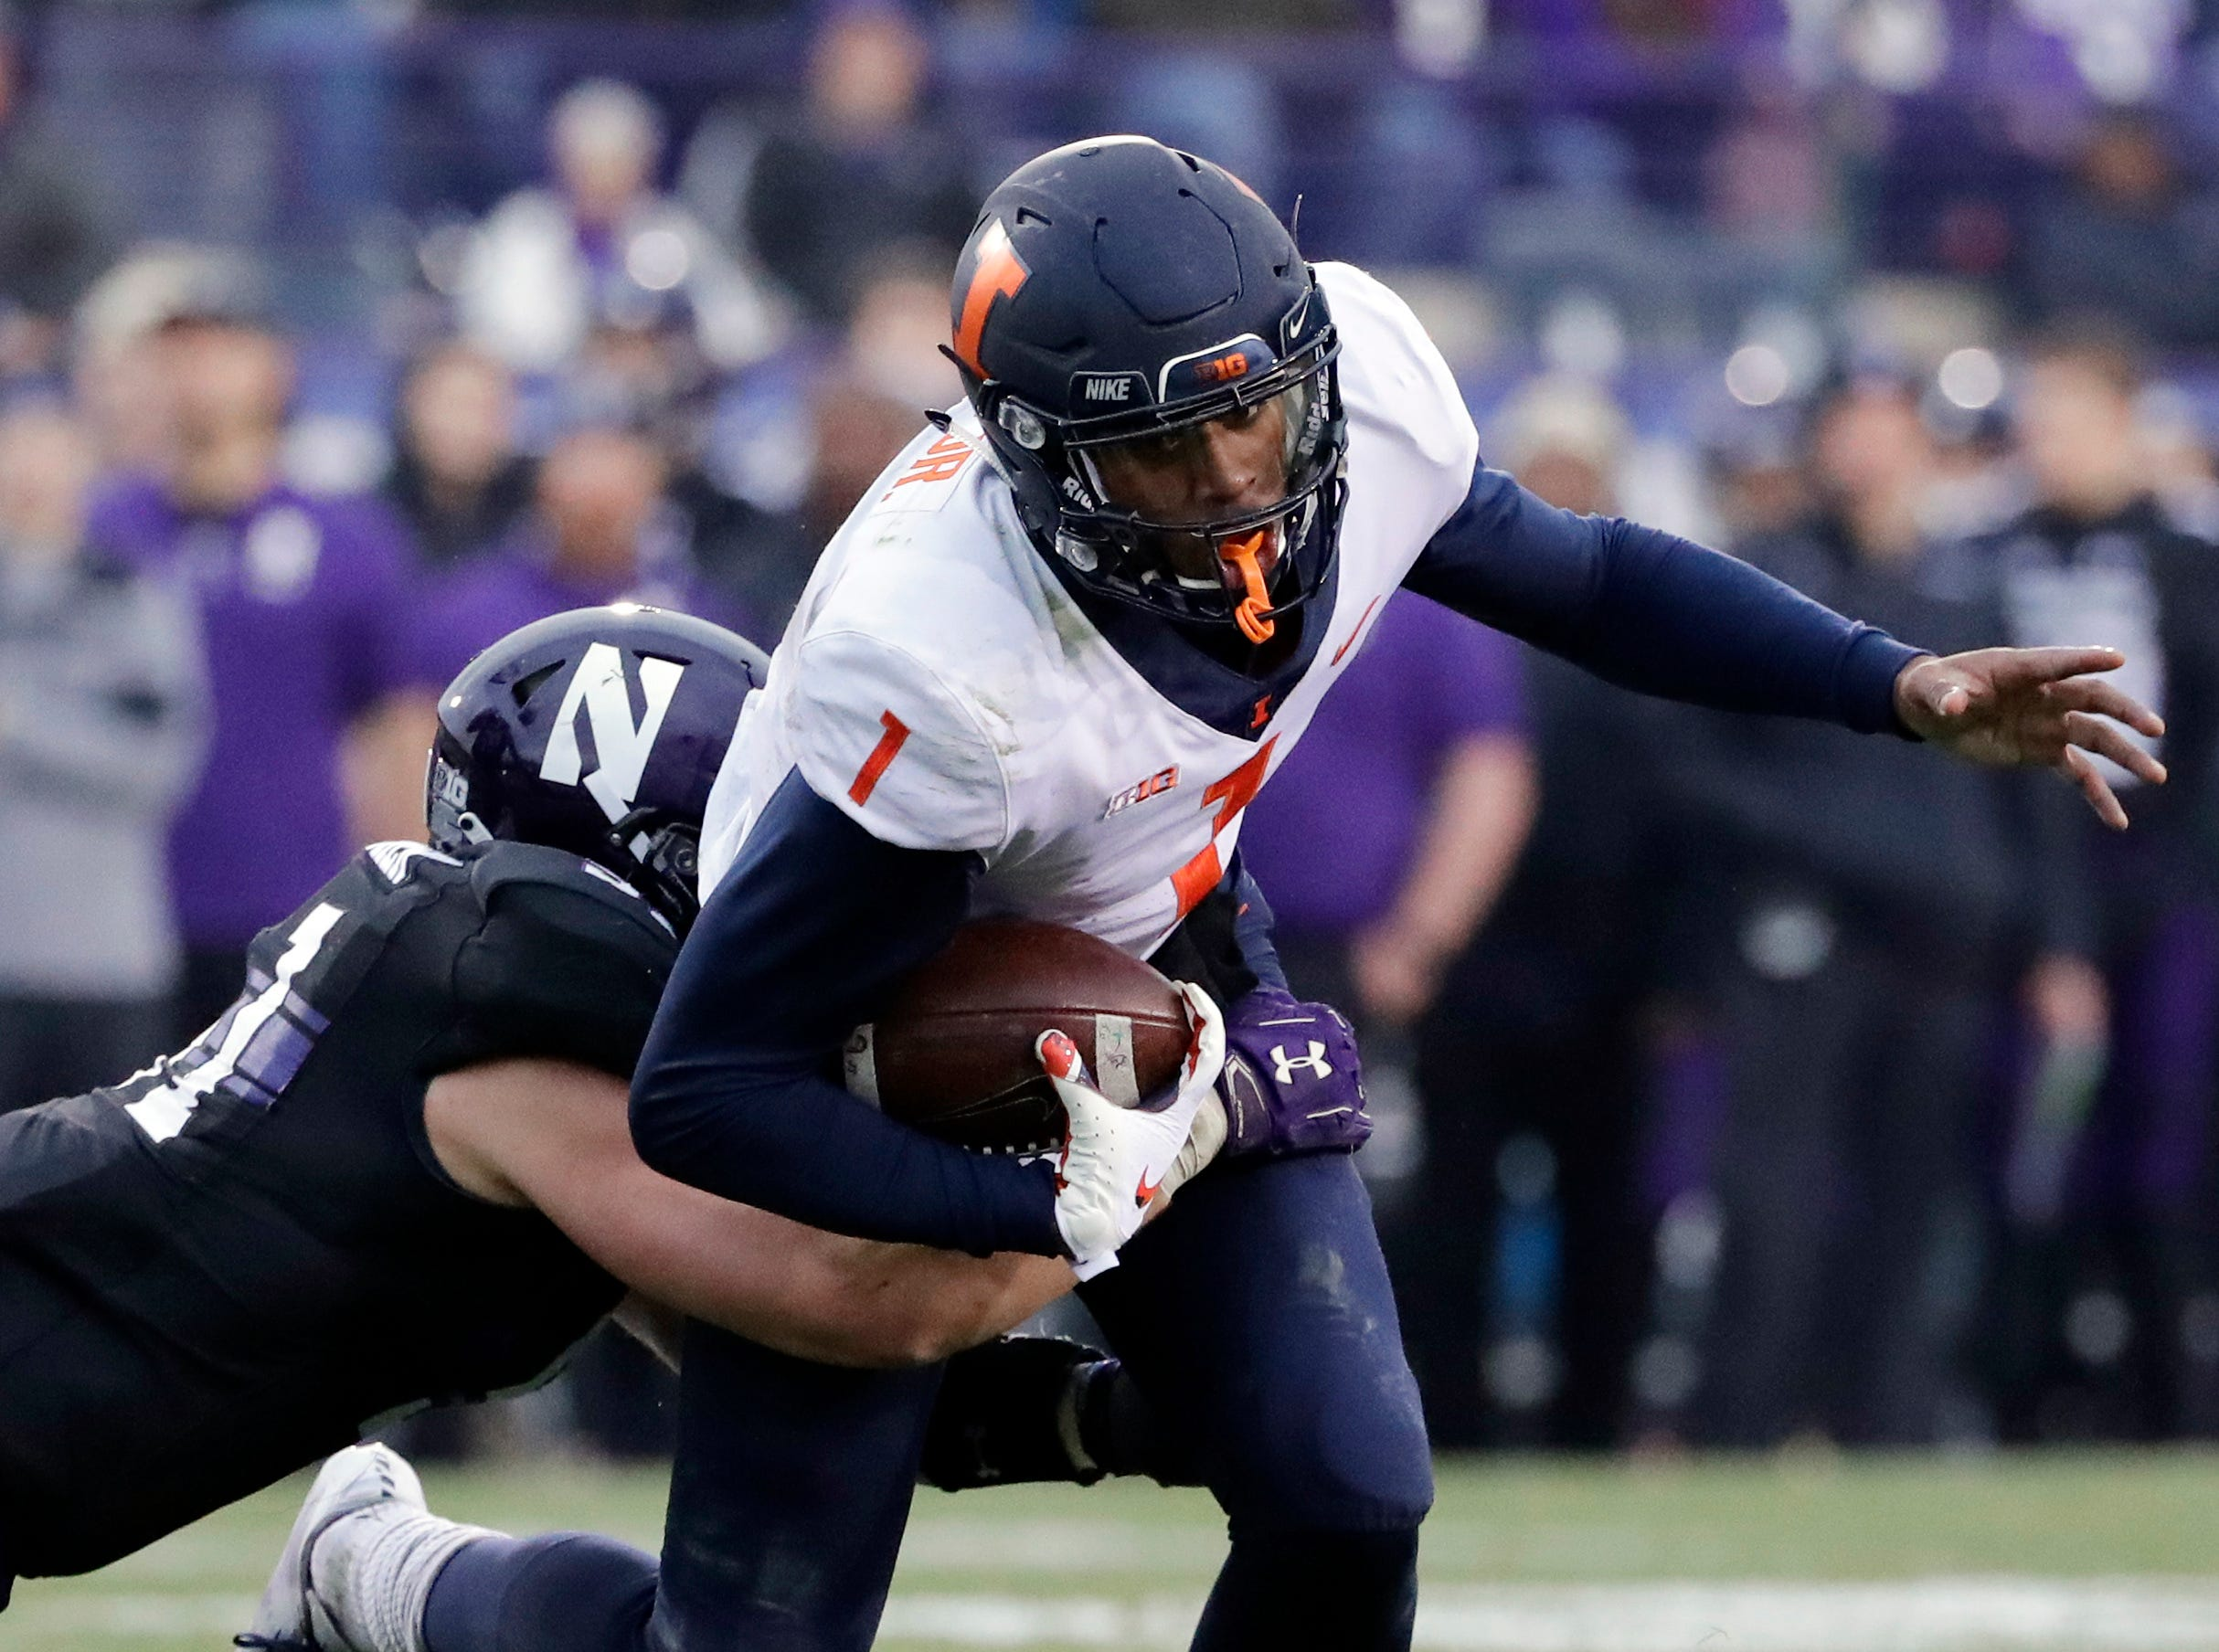 13. Illinois (4-8, 2-7) – The Fighting Illini showed some toughness in nearly coming back against Northwestern in the finale. However, like the bulk of coach Lovie Smith's three seasons, they simply didn't have enough firepower. Smith has just nine wins in three seasons, but was surprisingly given a two-year extension, through 2023, just one day after the season ended. Last week: 13.